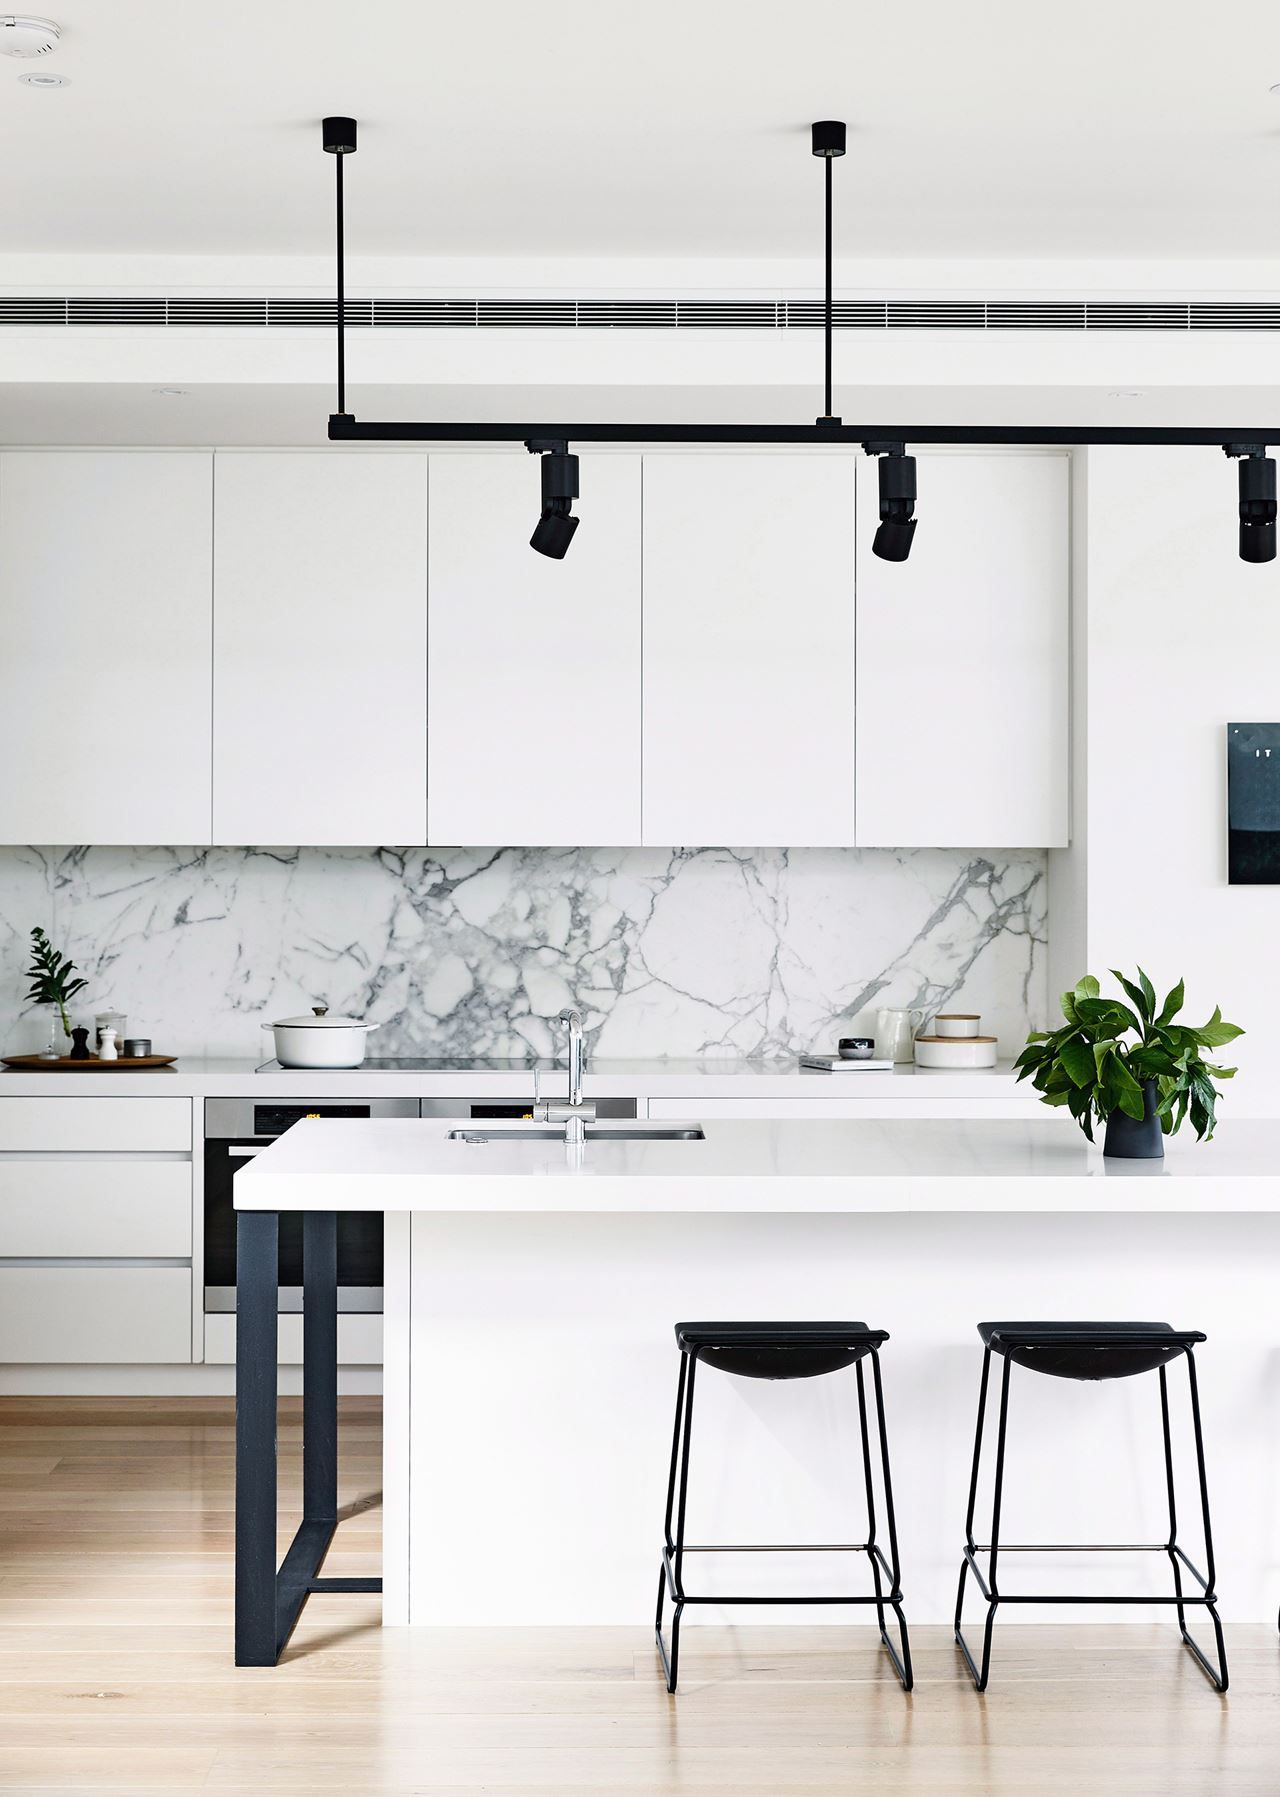 Black And White Monochrome Kitchen Handleless White Cabinets And - Black kitchen spotlights